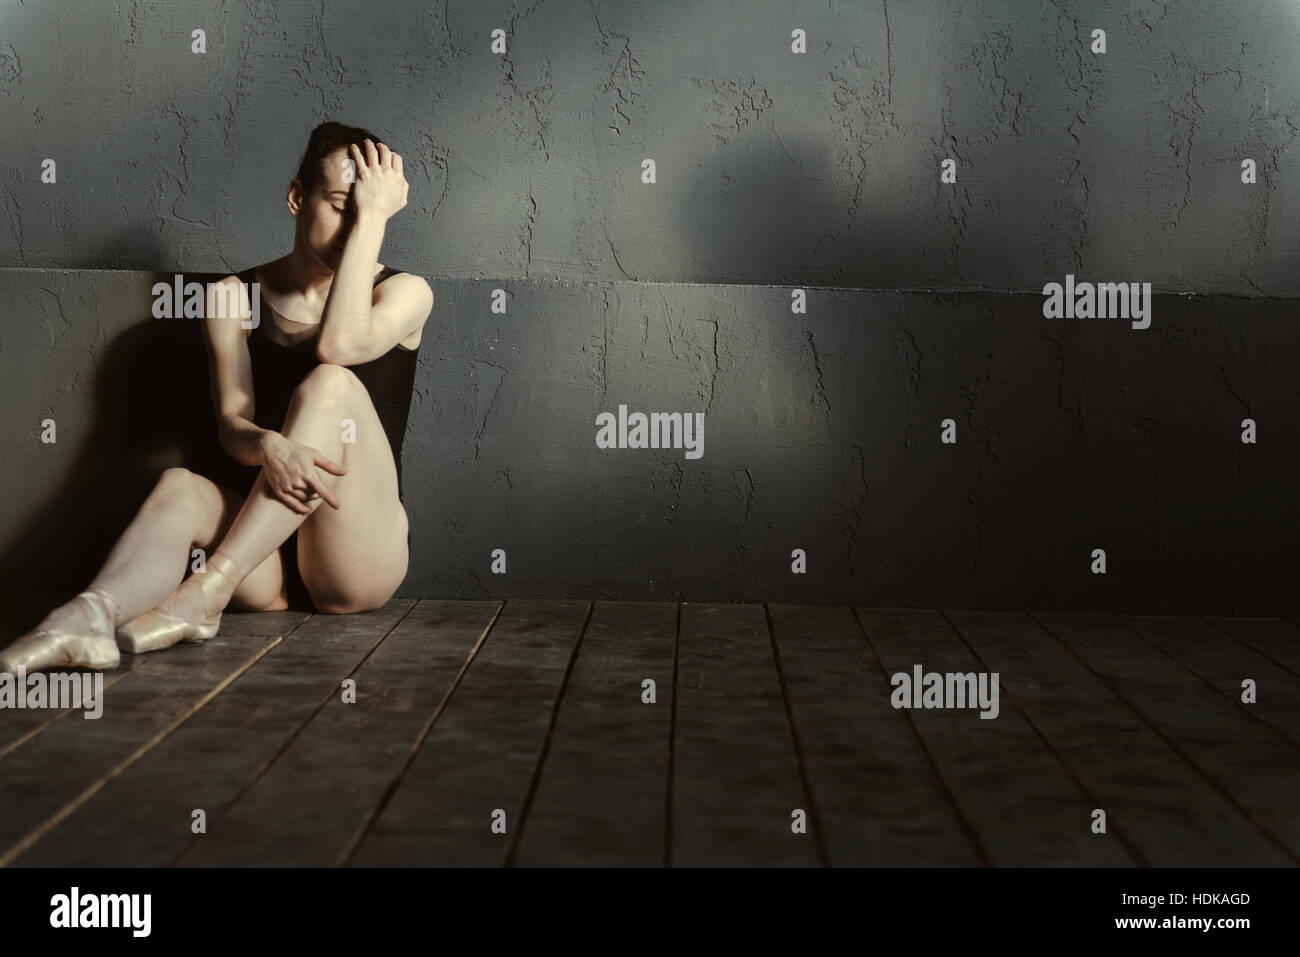 Disappointed ballet dancer sitting in the dark lighted room - Stock Image